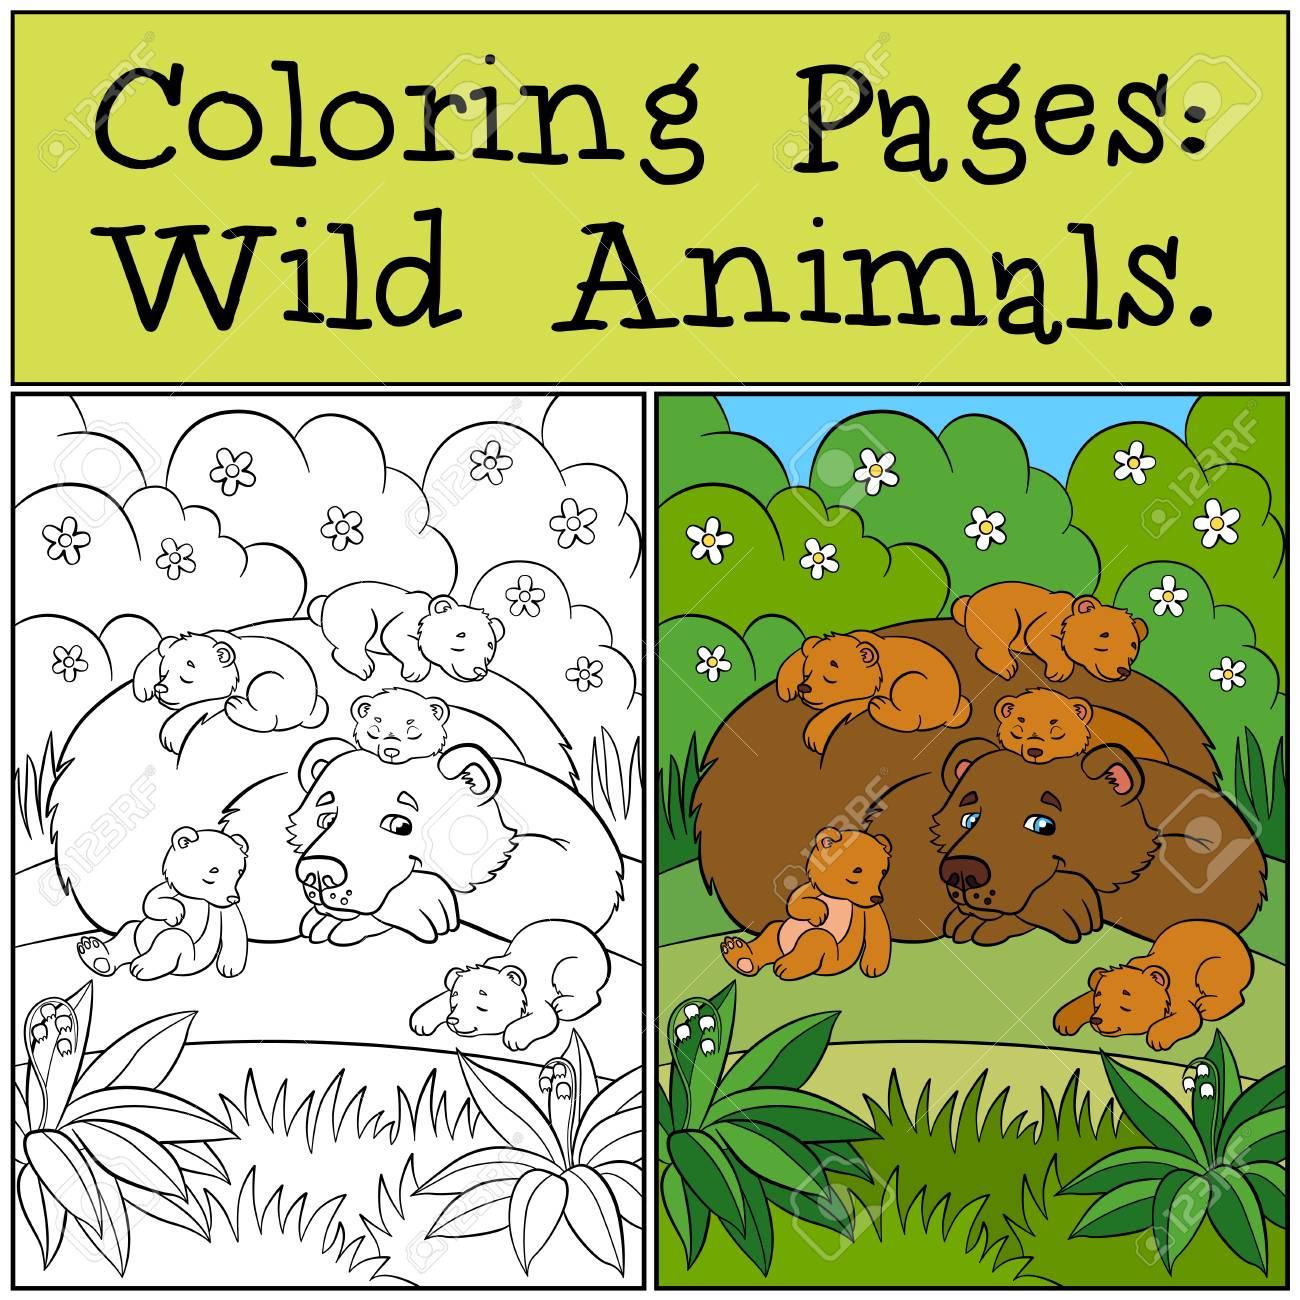 Coloring pages wild animals daddy bear with his little cute